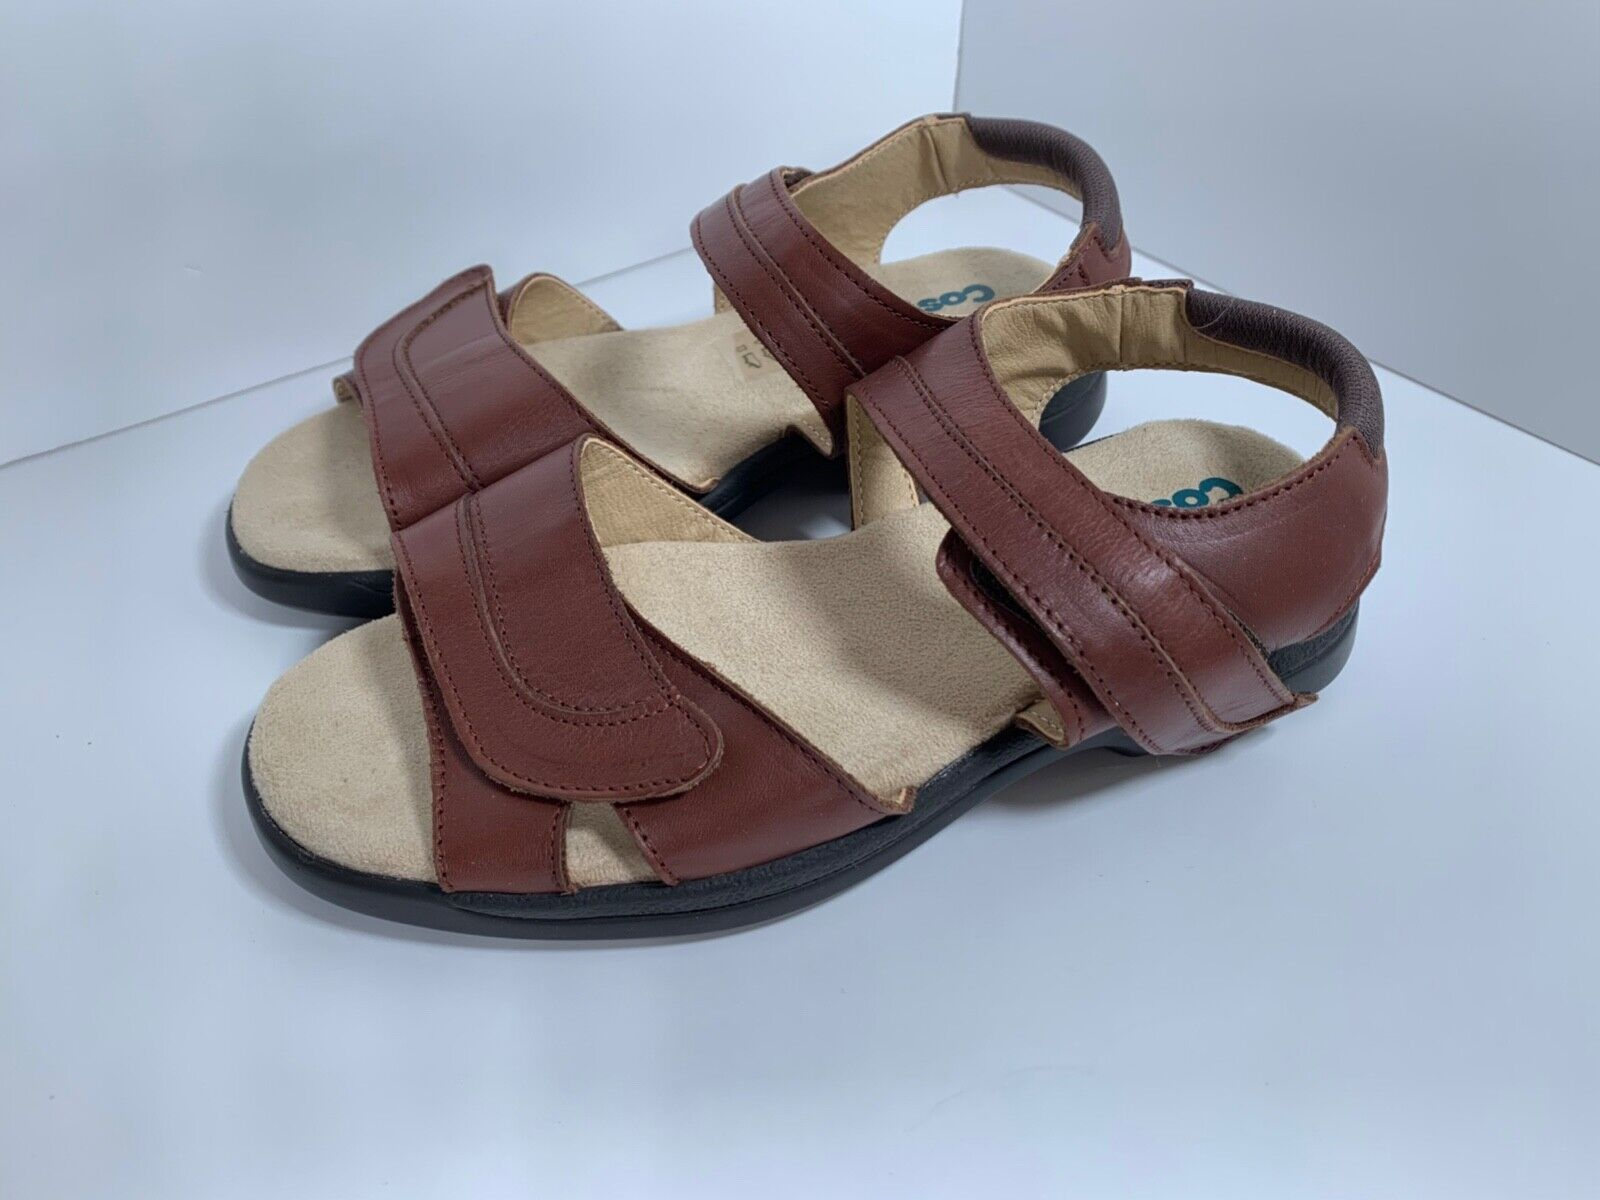 Cosyfeet Cher Leather Adjustable Strap Sandal Shoe Brown/Nut Size 4